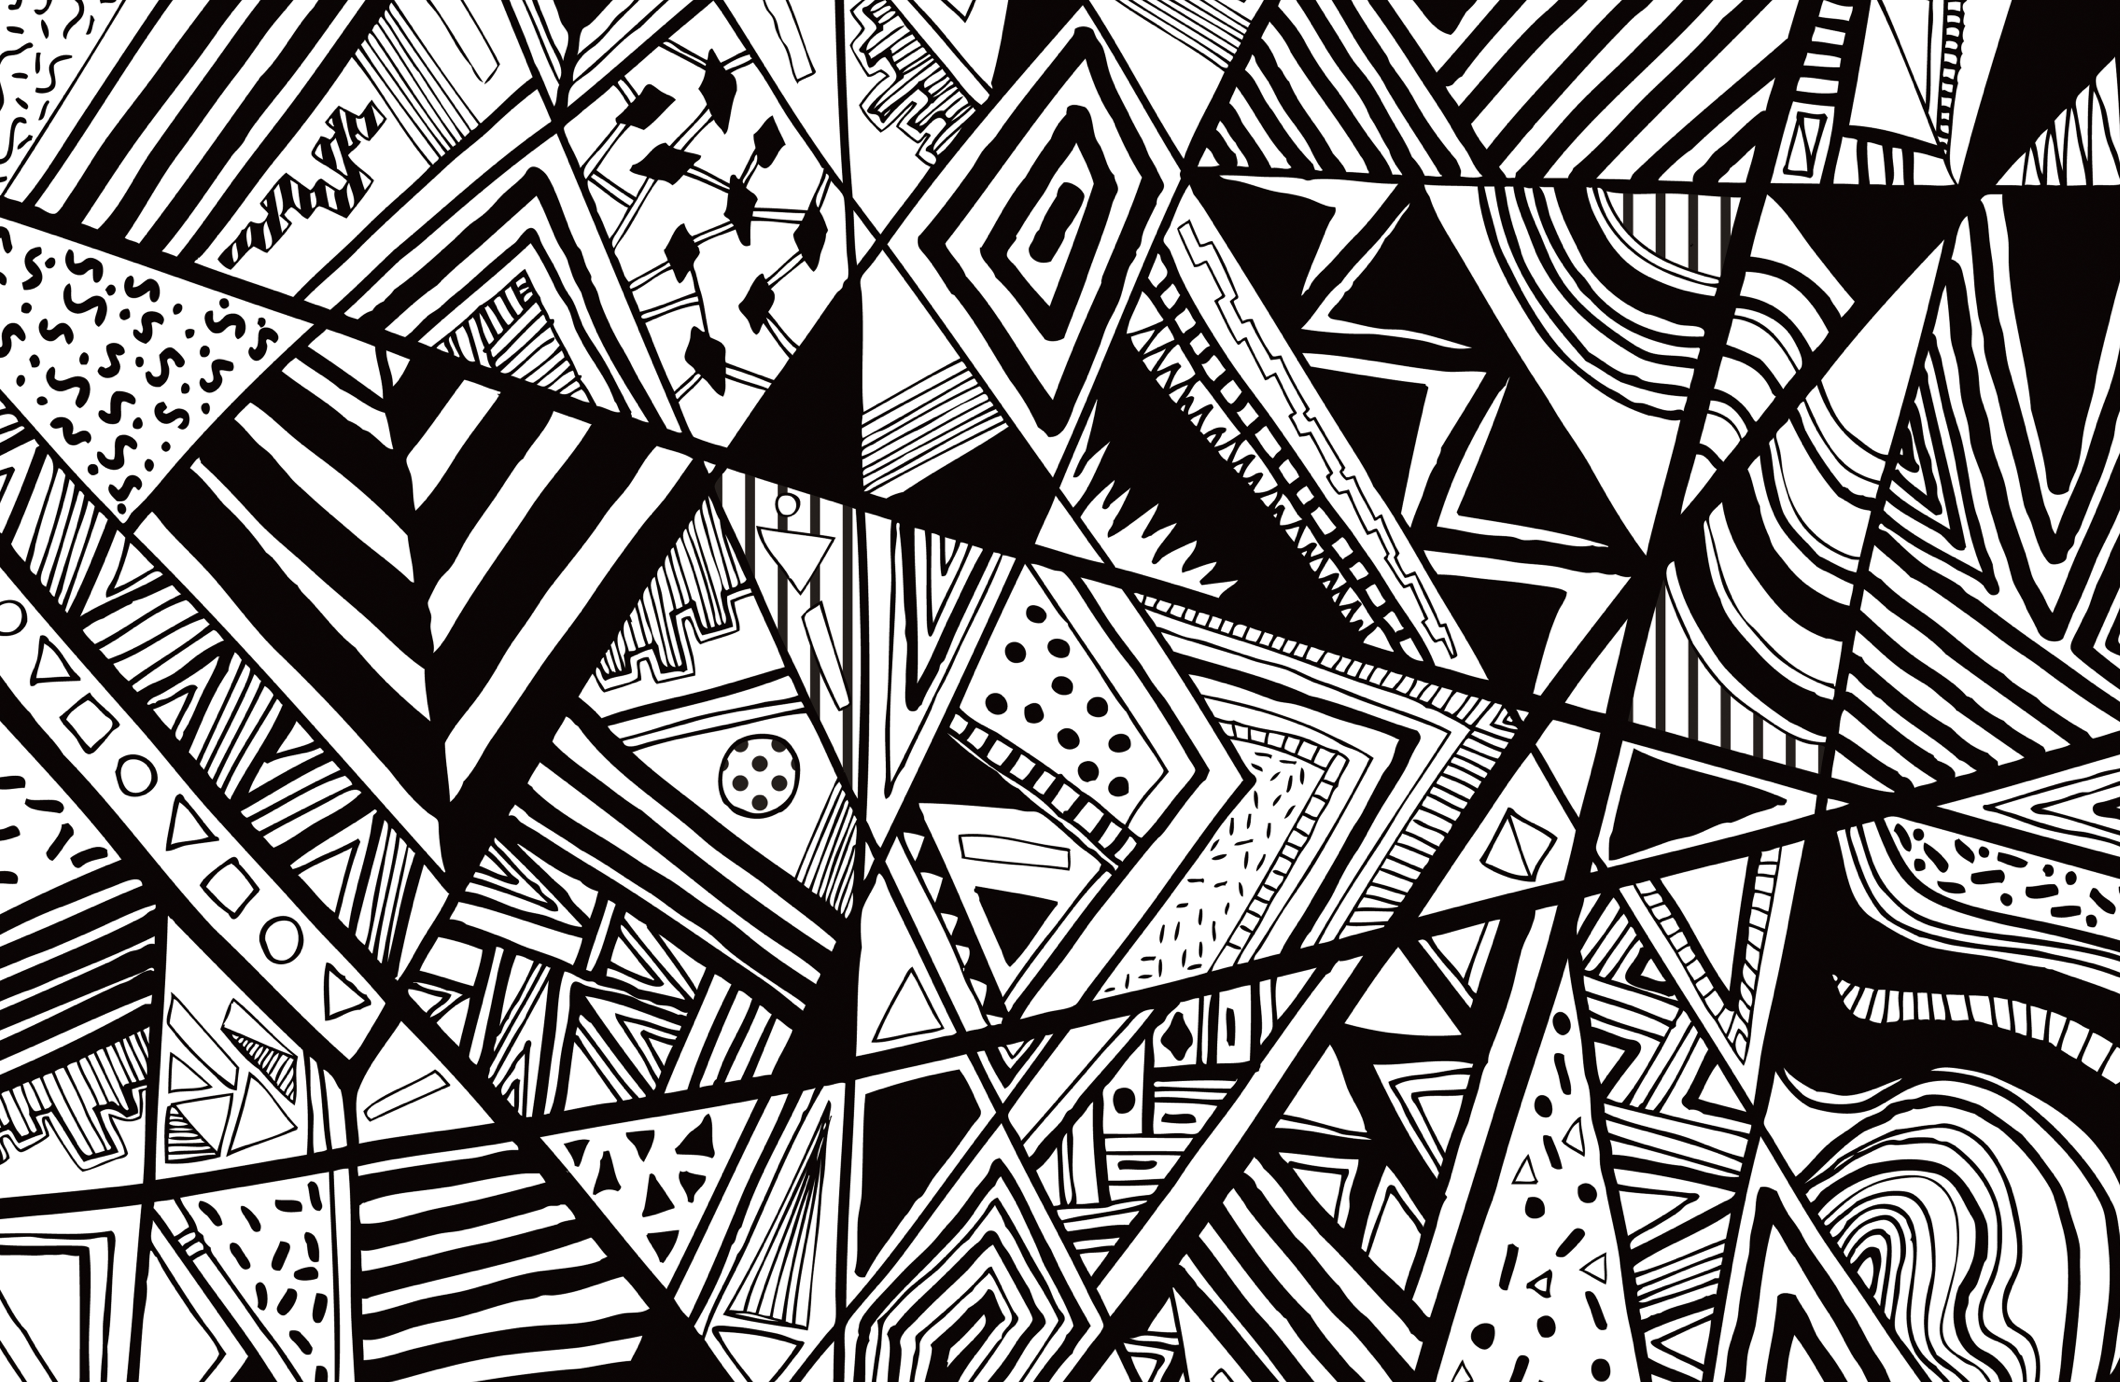 Black And White Design Perfect Cool Black And White Designs Patterns On Pinterest